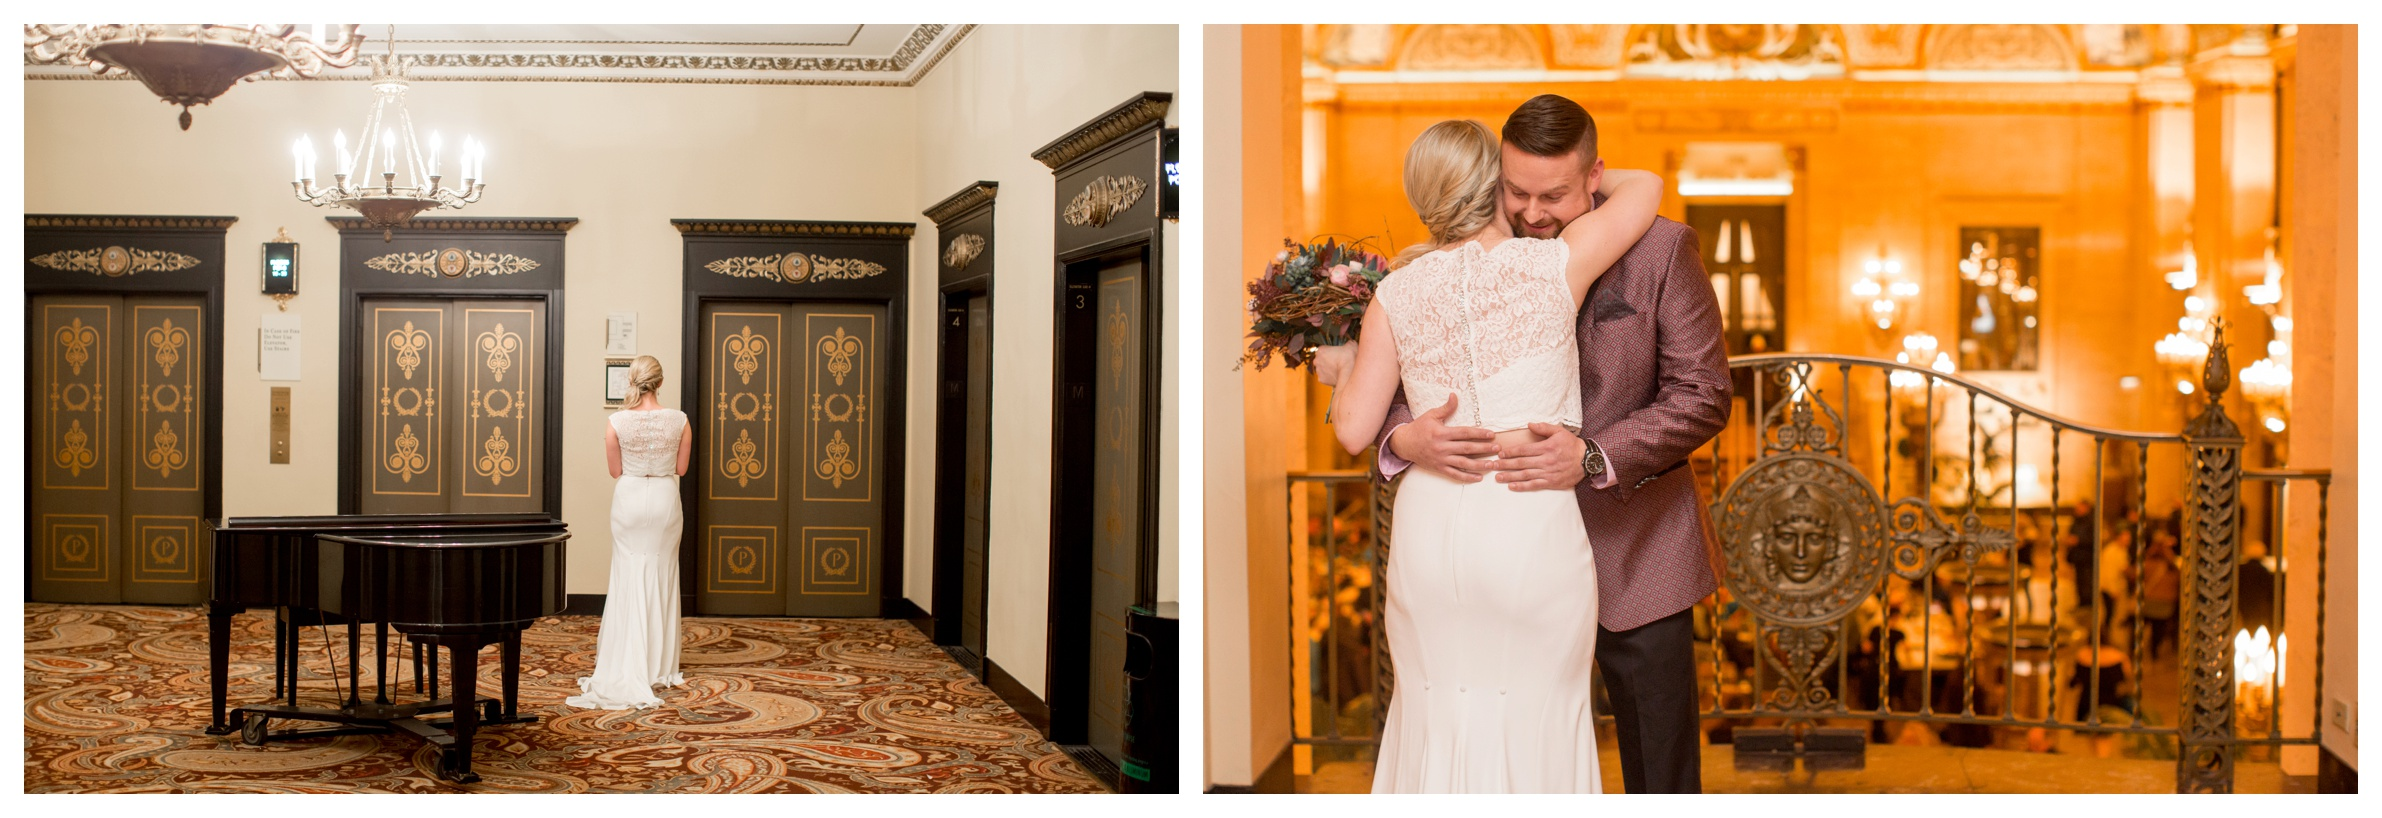 chicago-palmer-house-weddings